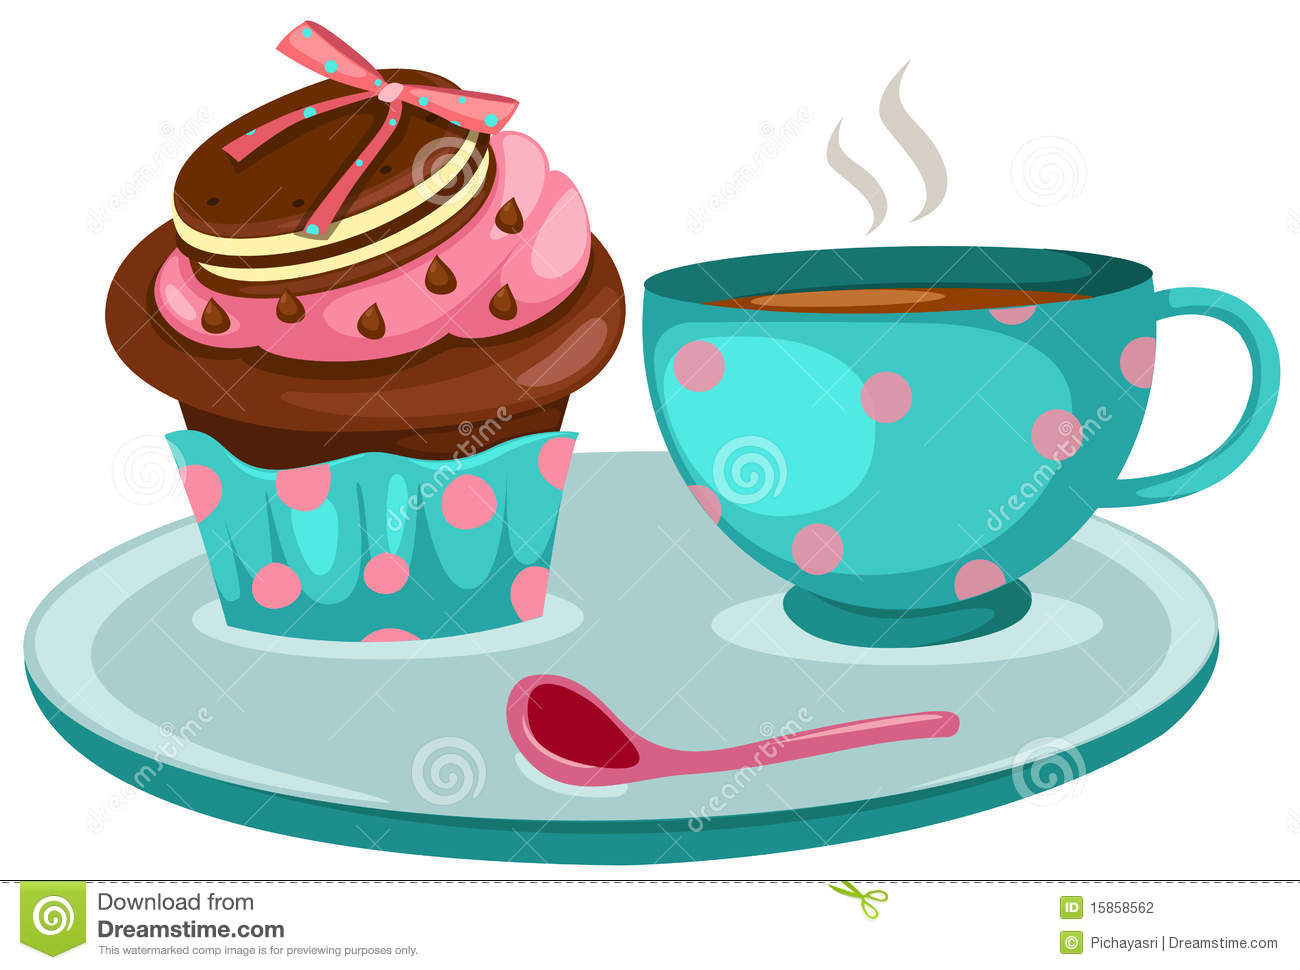 Pin Two Candle Cupcake Clipart Birthday Cake Cake On Pinterest